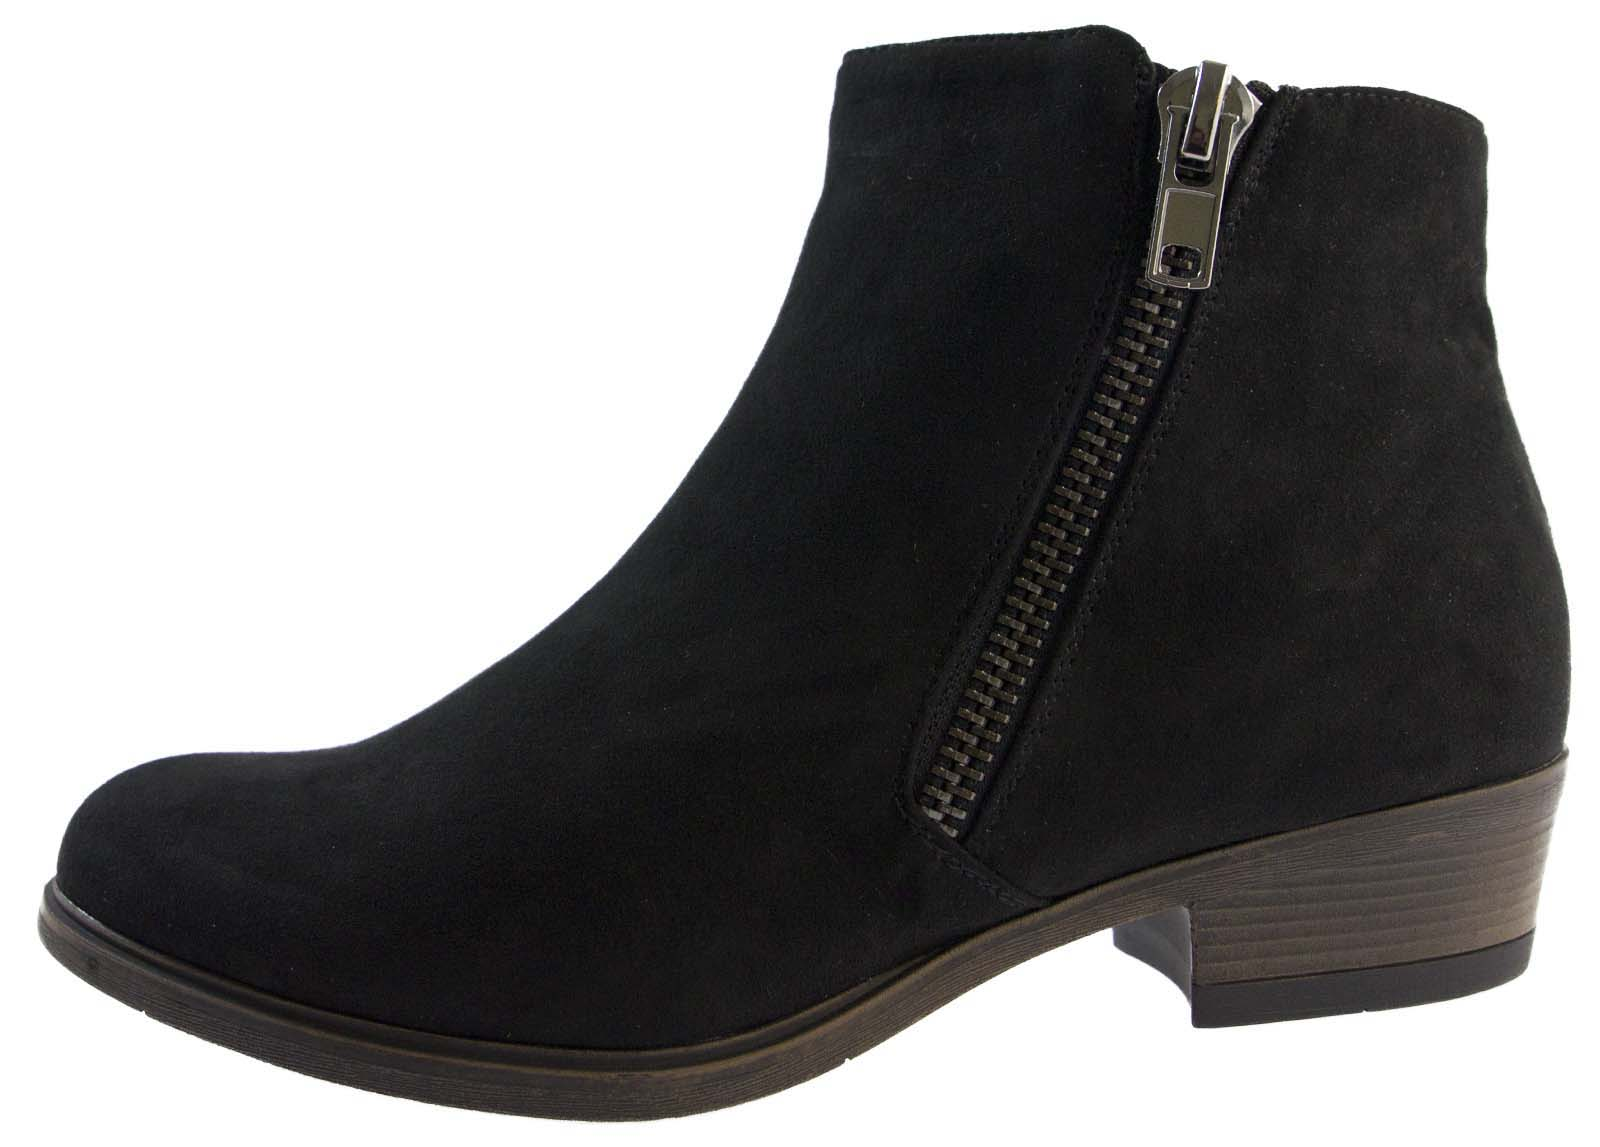 17, results for womens low heels suede boots Save womens low heels suede boots to get e-mail alerts and updates on your eBay Feed. Unfollow womens low heels suede boots to stop getting updates on your eBay feed.